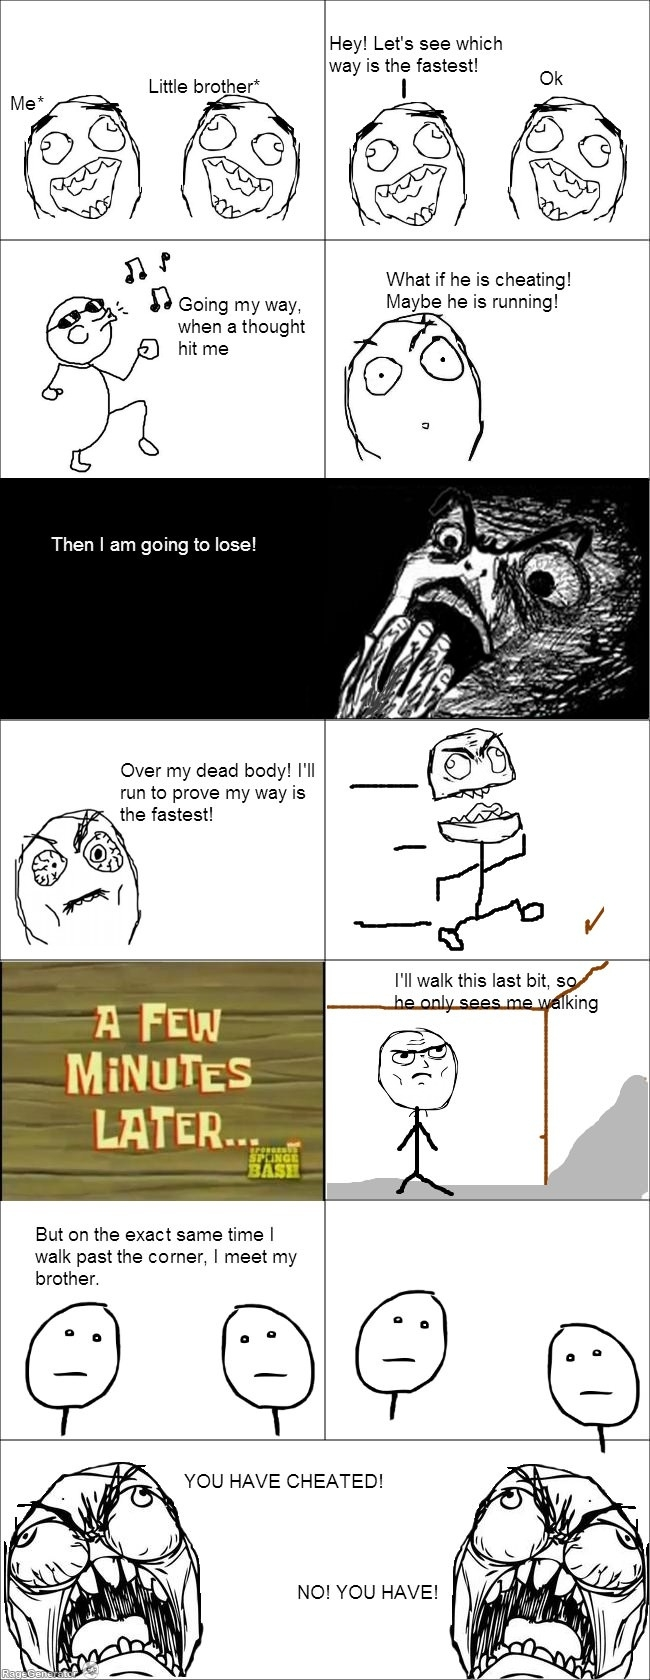 Admit it! You did it too!